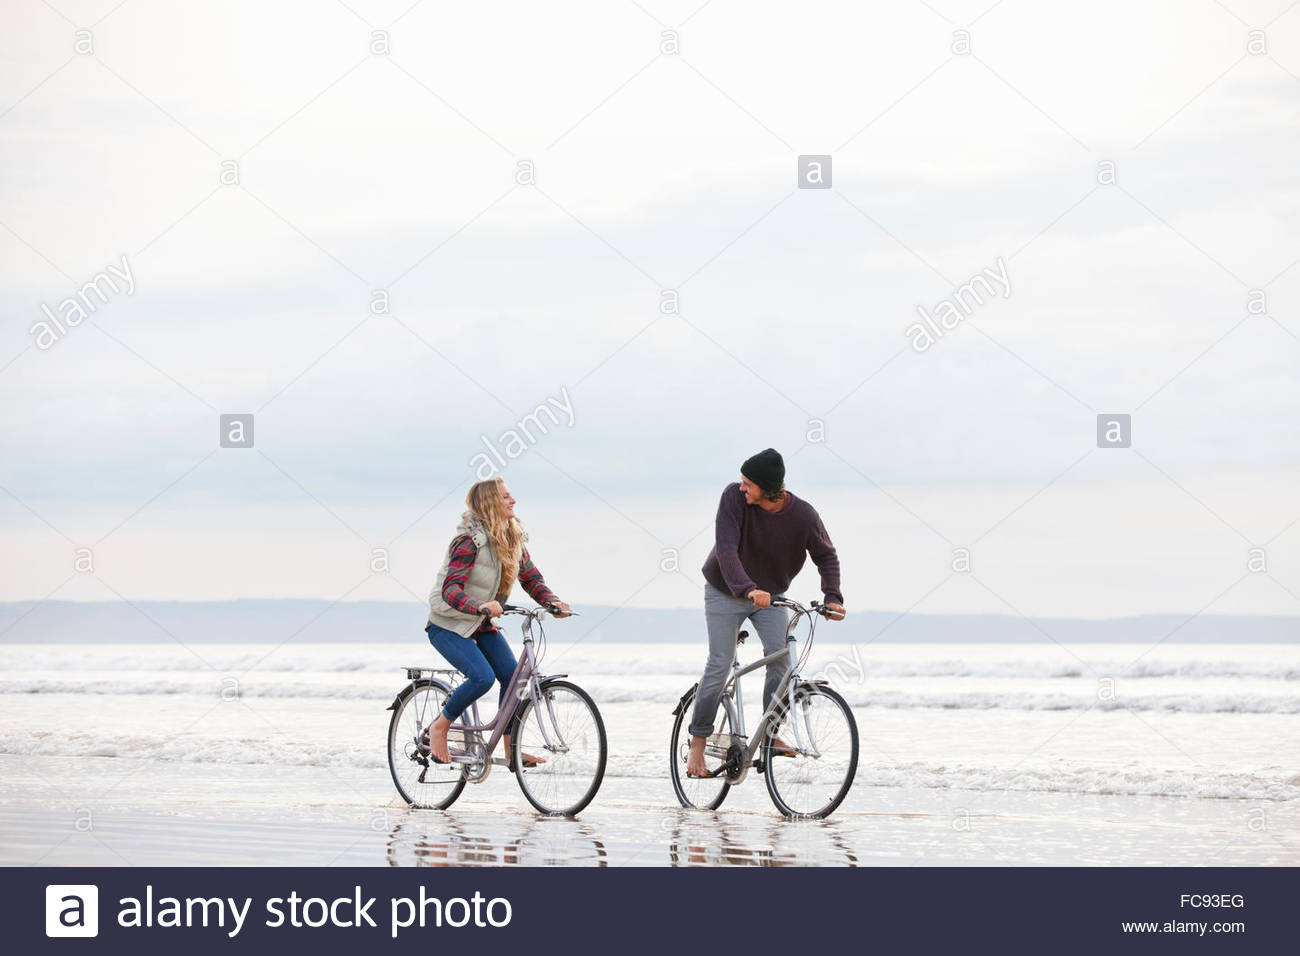 Couple riding bicycles dans océan surf Photo Stock